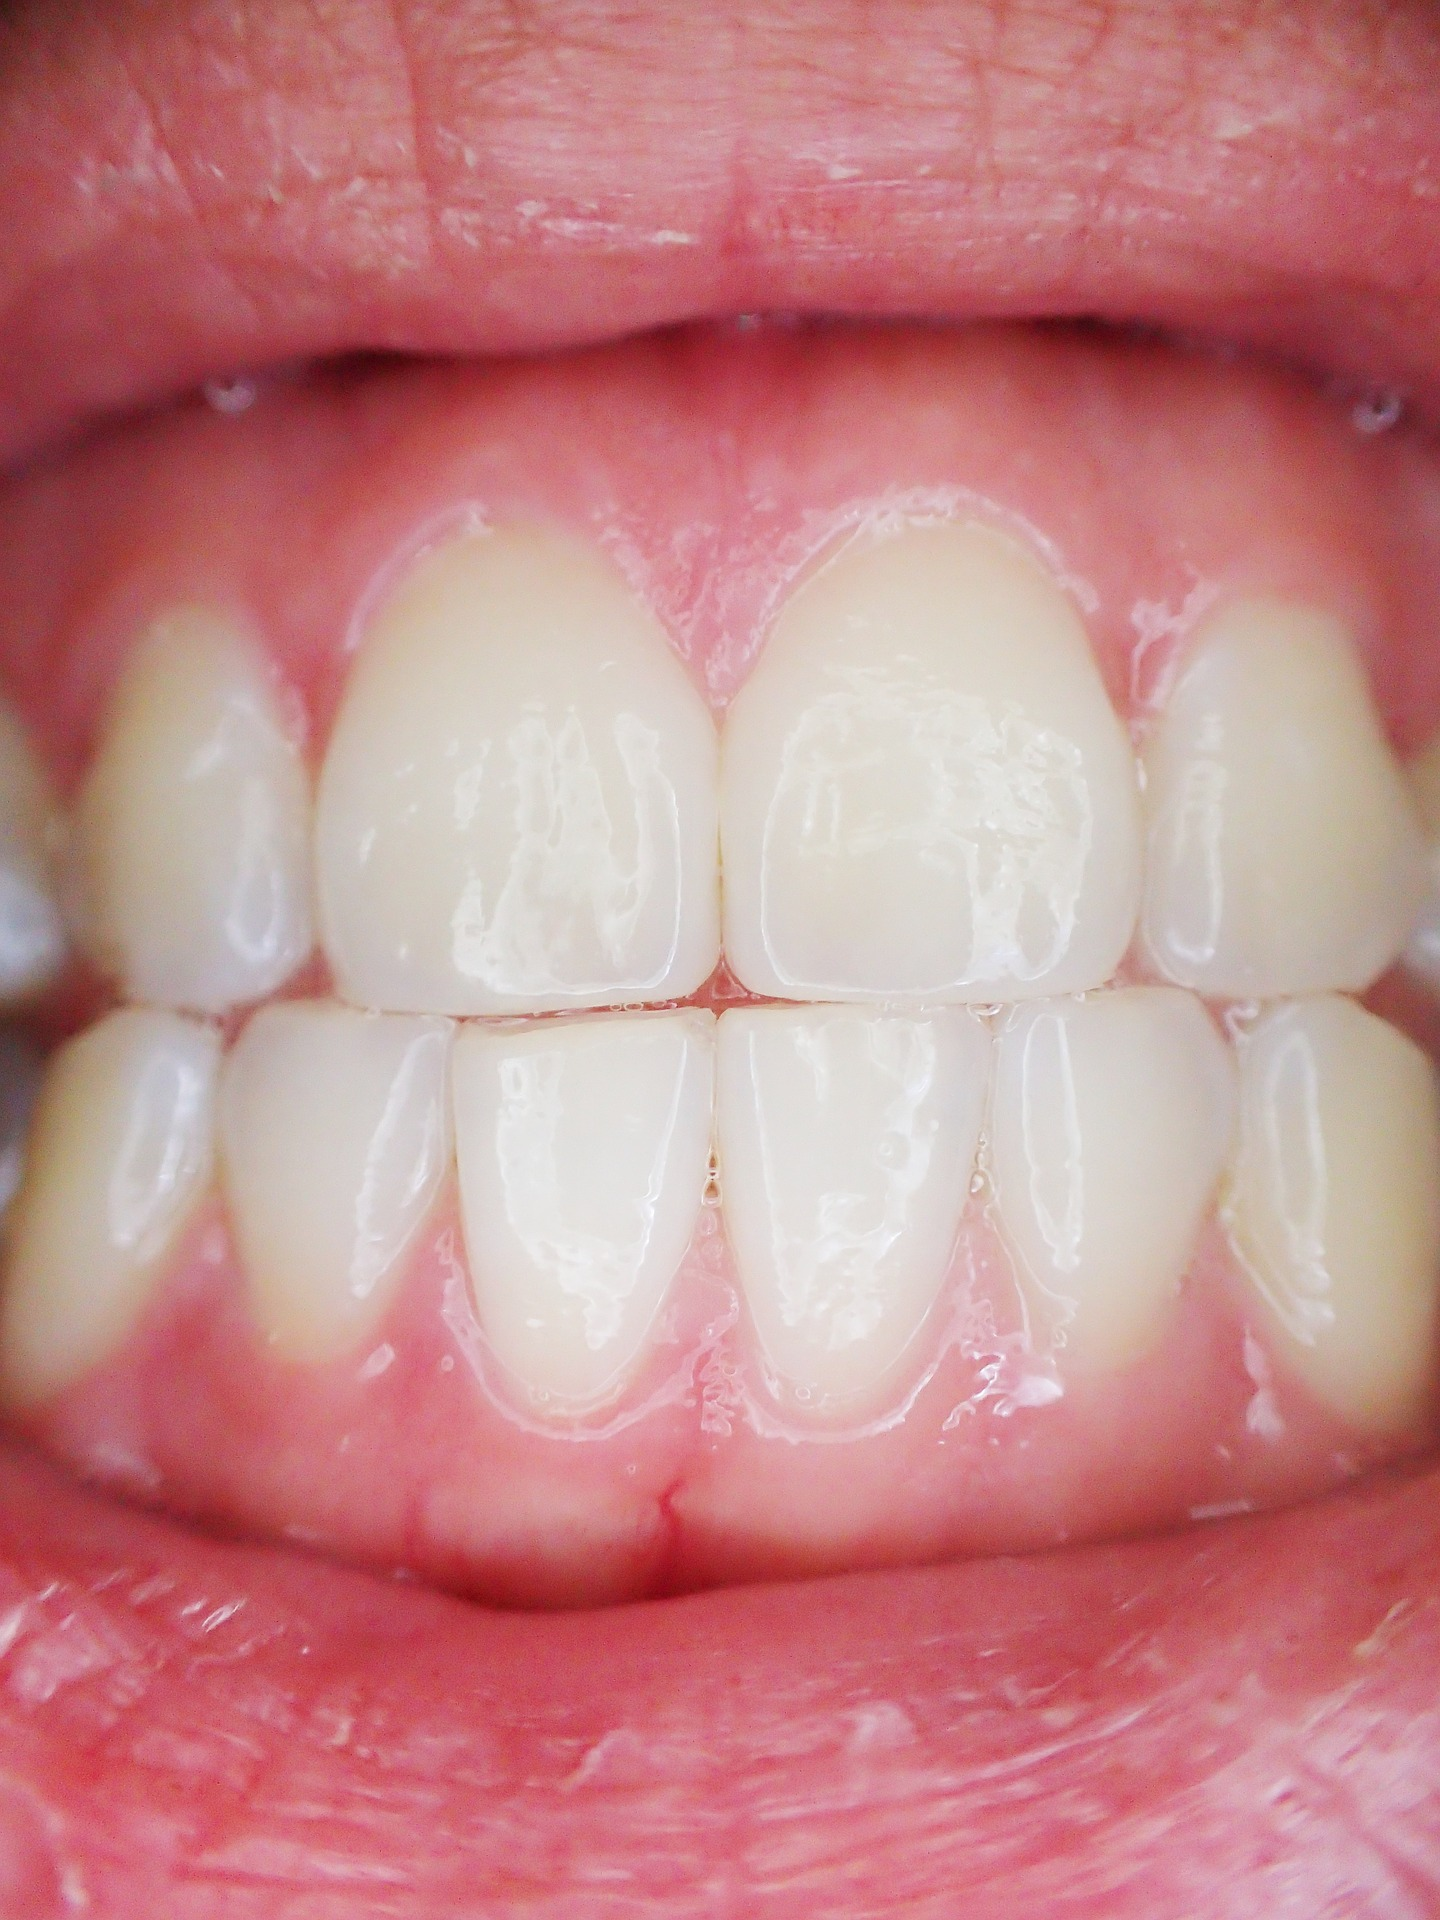 Gum Diseases and Issues Experienced with the Gums